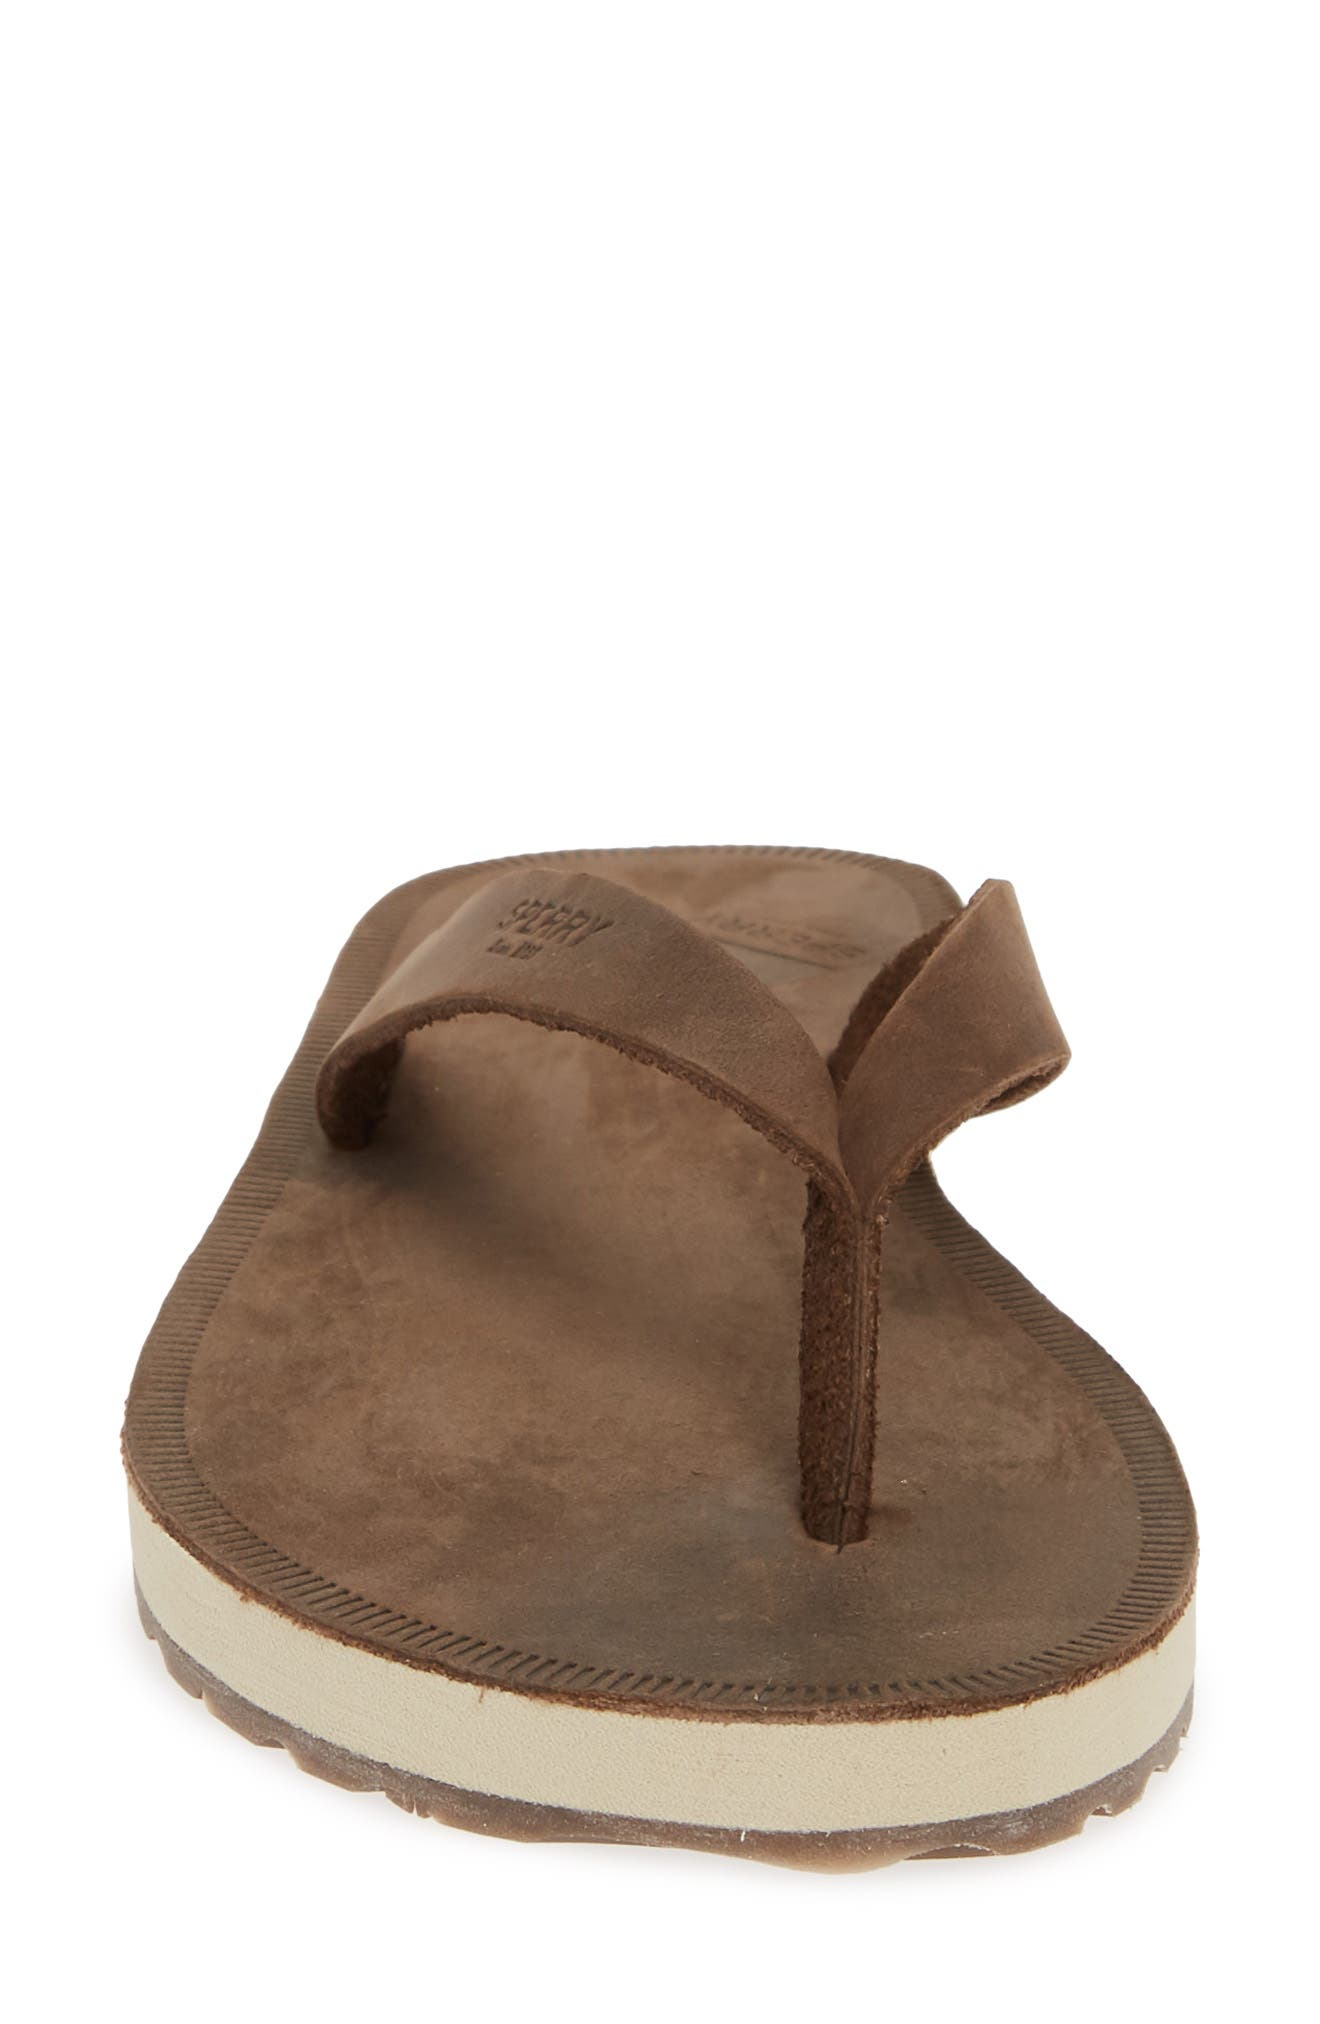 SPERRY, Wharf Flip Flop, Alternate thumbnail 4, color, CHOCOLATE LEATHER